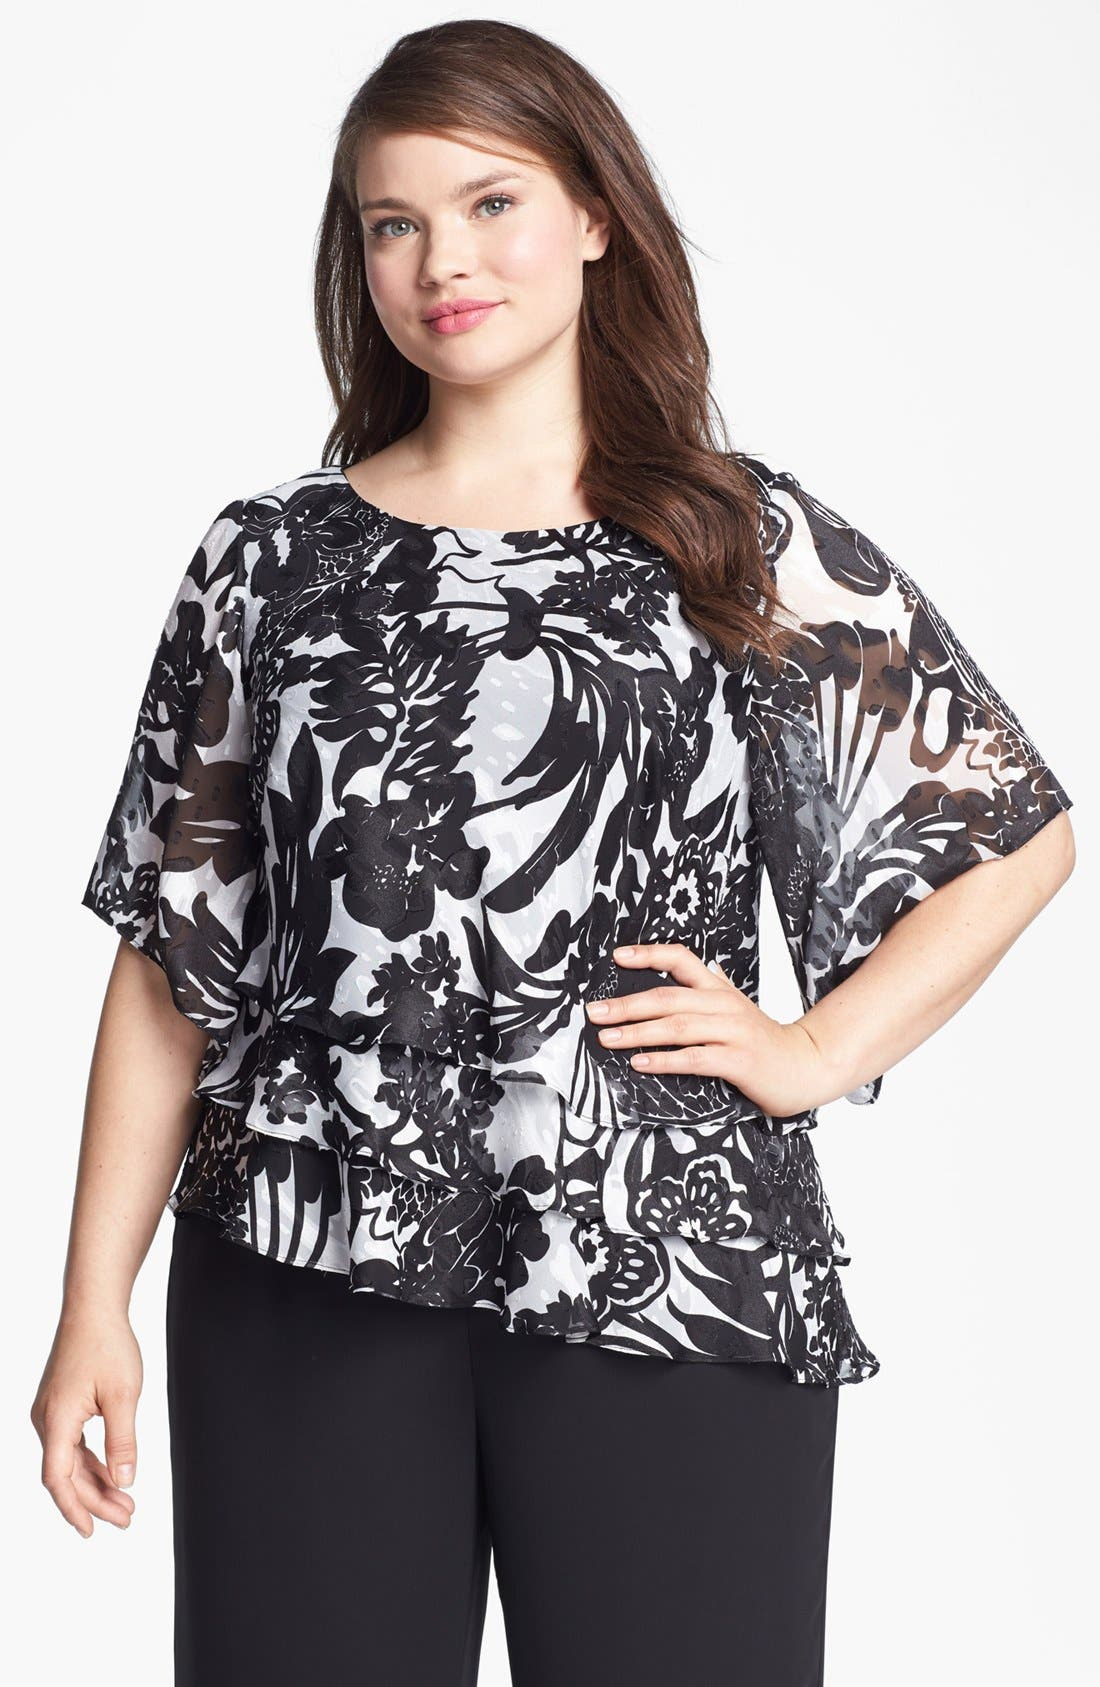 Alternate Image 1 Selected - Alex Evenings Print Tiered Blouse (Plus Size)